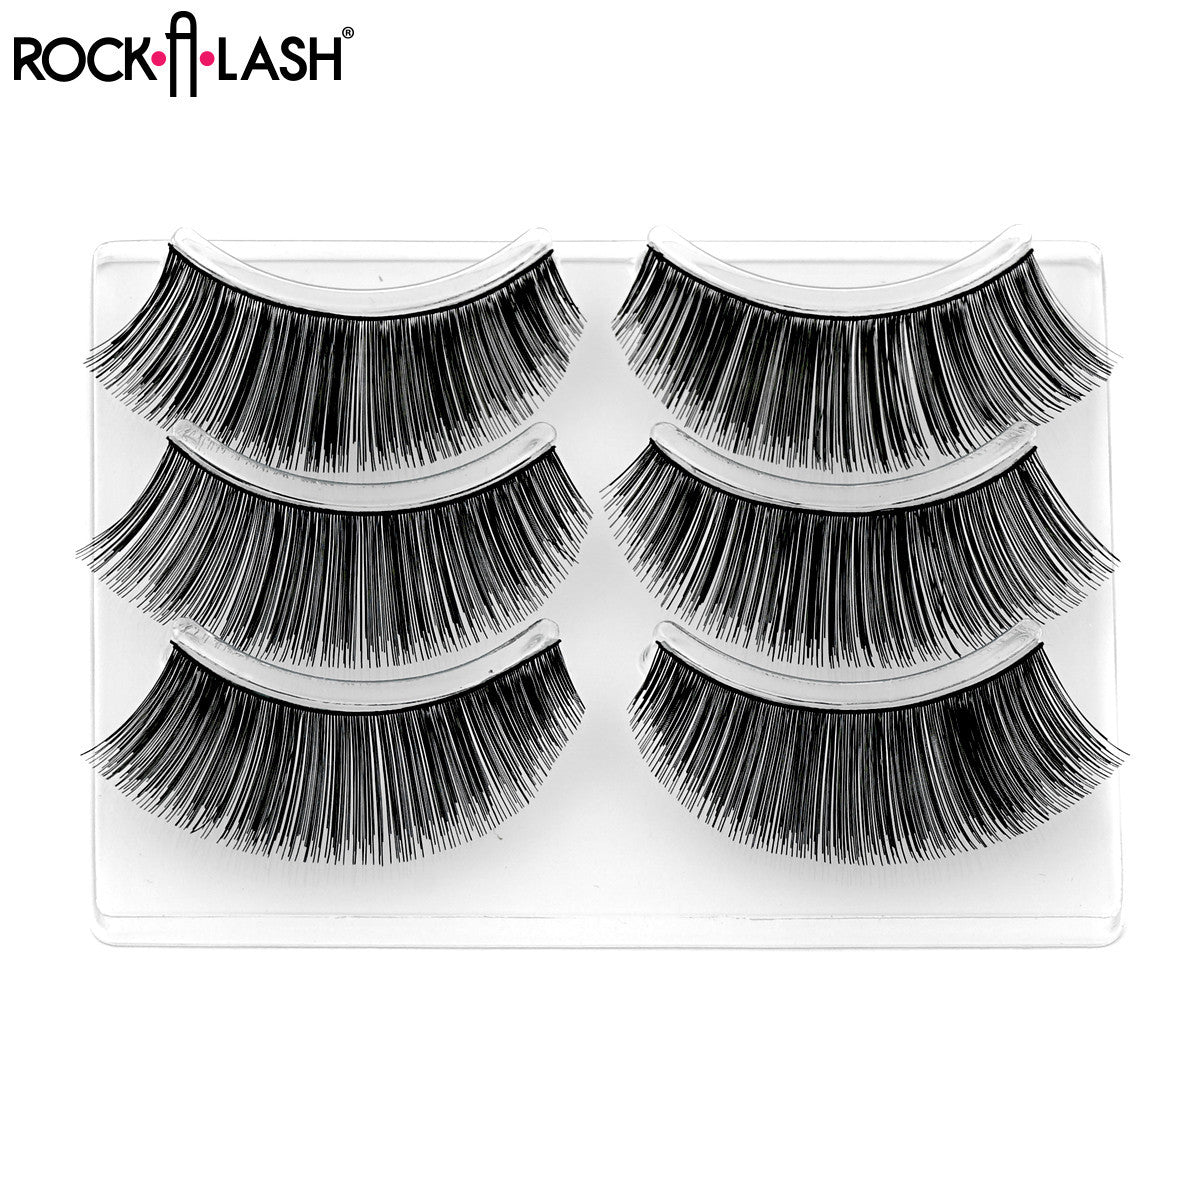 Rock-A-Lash ® <br> #5 - Wishful Winking™ - 3 Pack